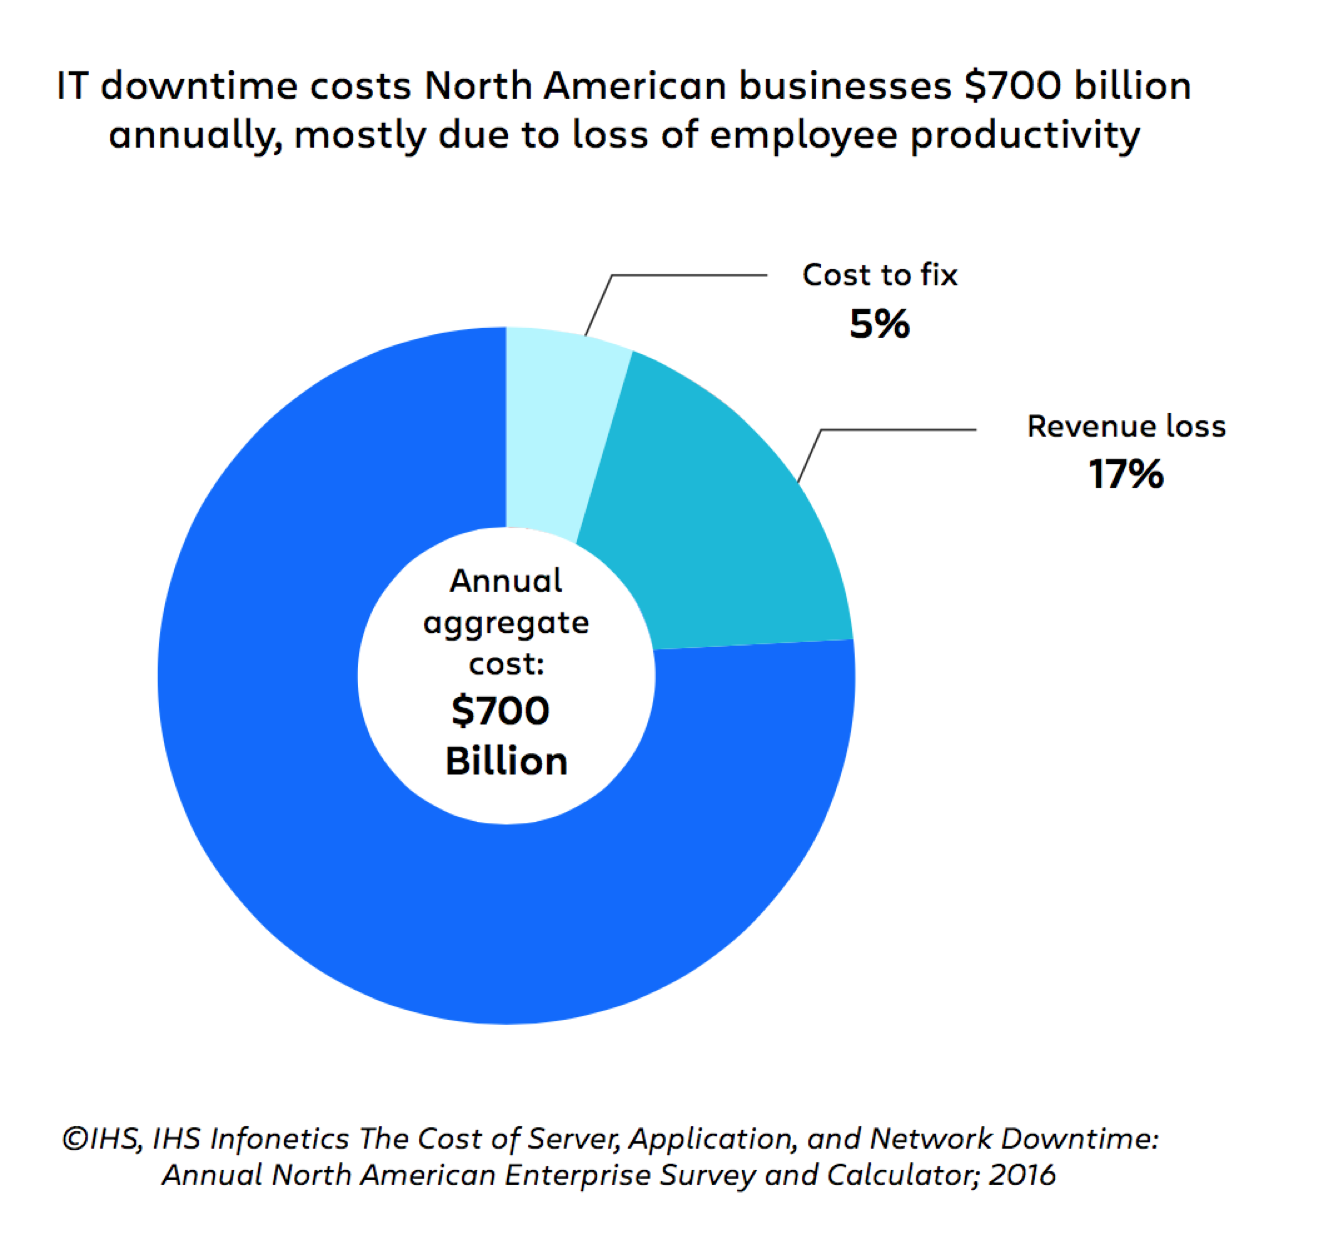 Graphic from page 9 showing IT downtime. Highlights that employee productivity is the largest cost by far. IT downtime costs North American businesses $700 billion annually, mostly due to loss of employee productivity.